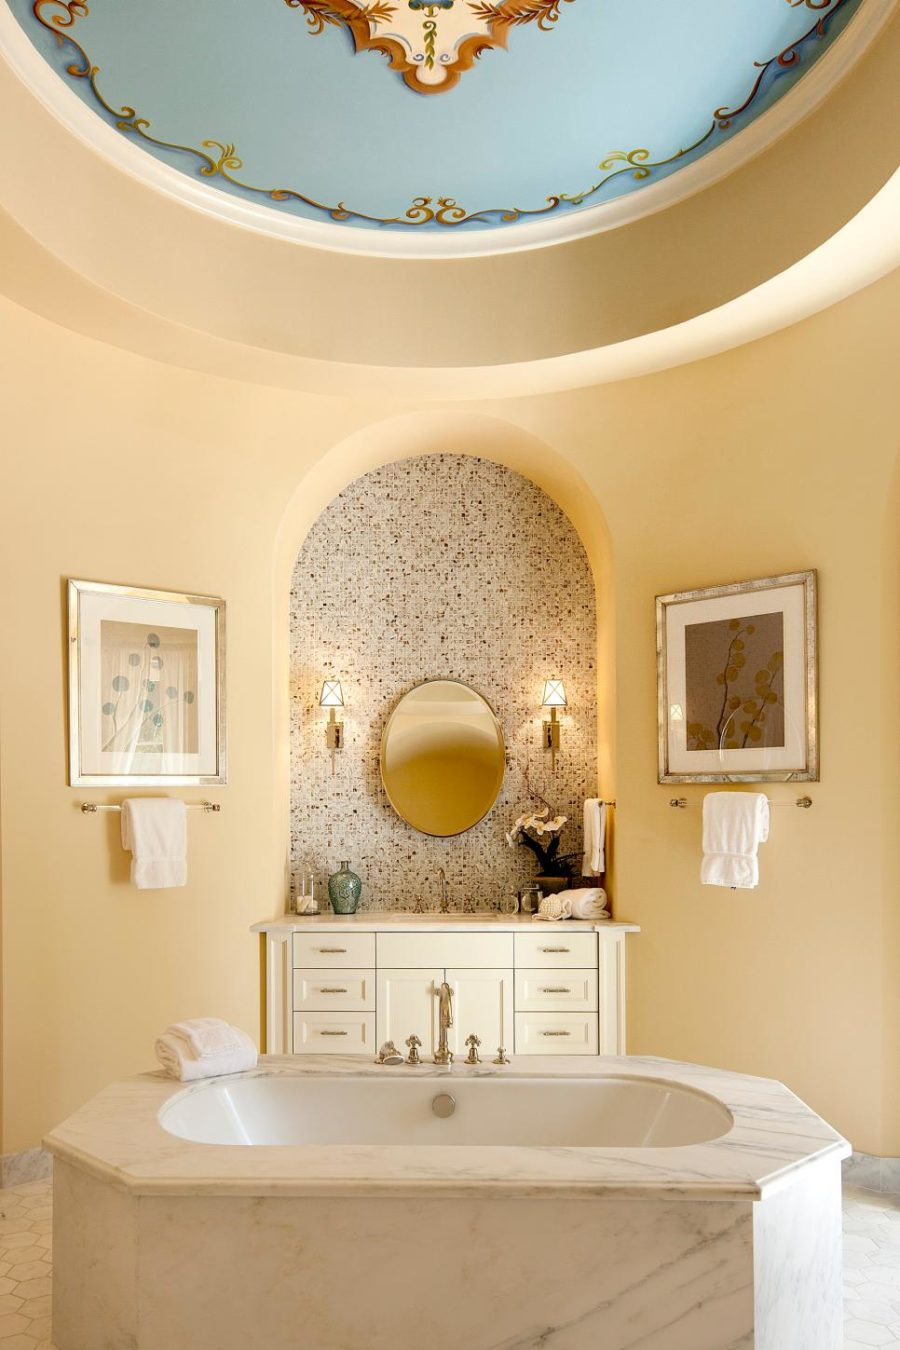 Round ceiling via Village Properties